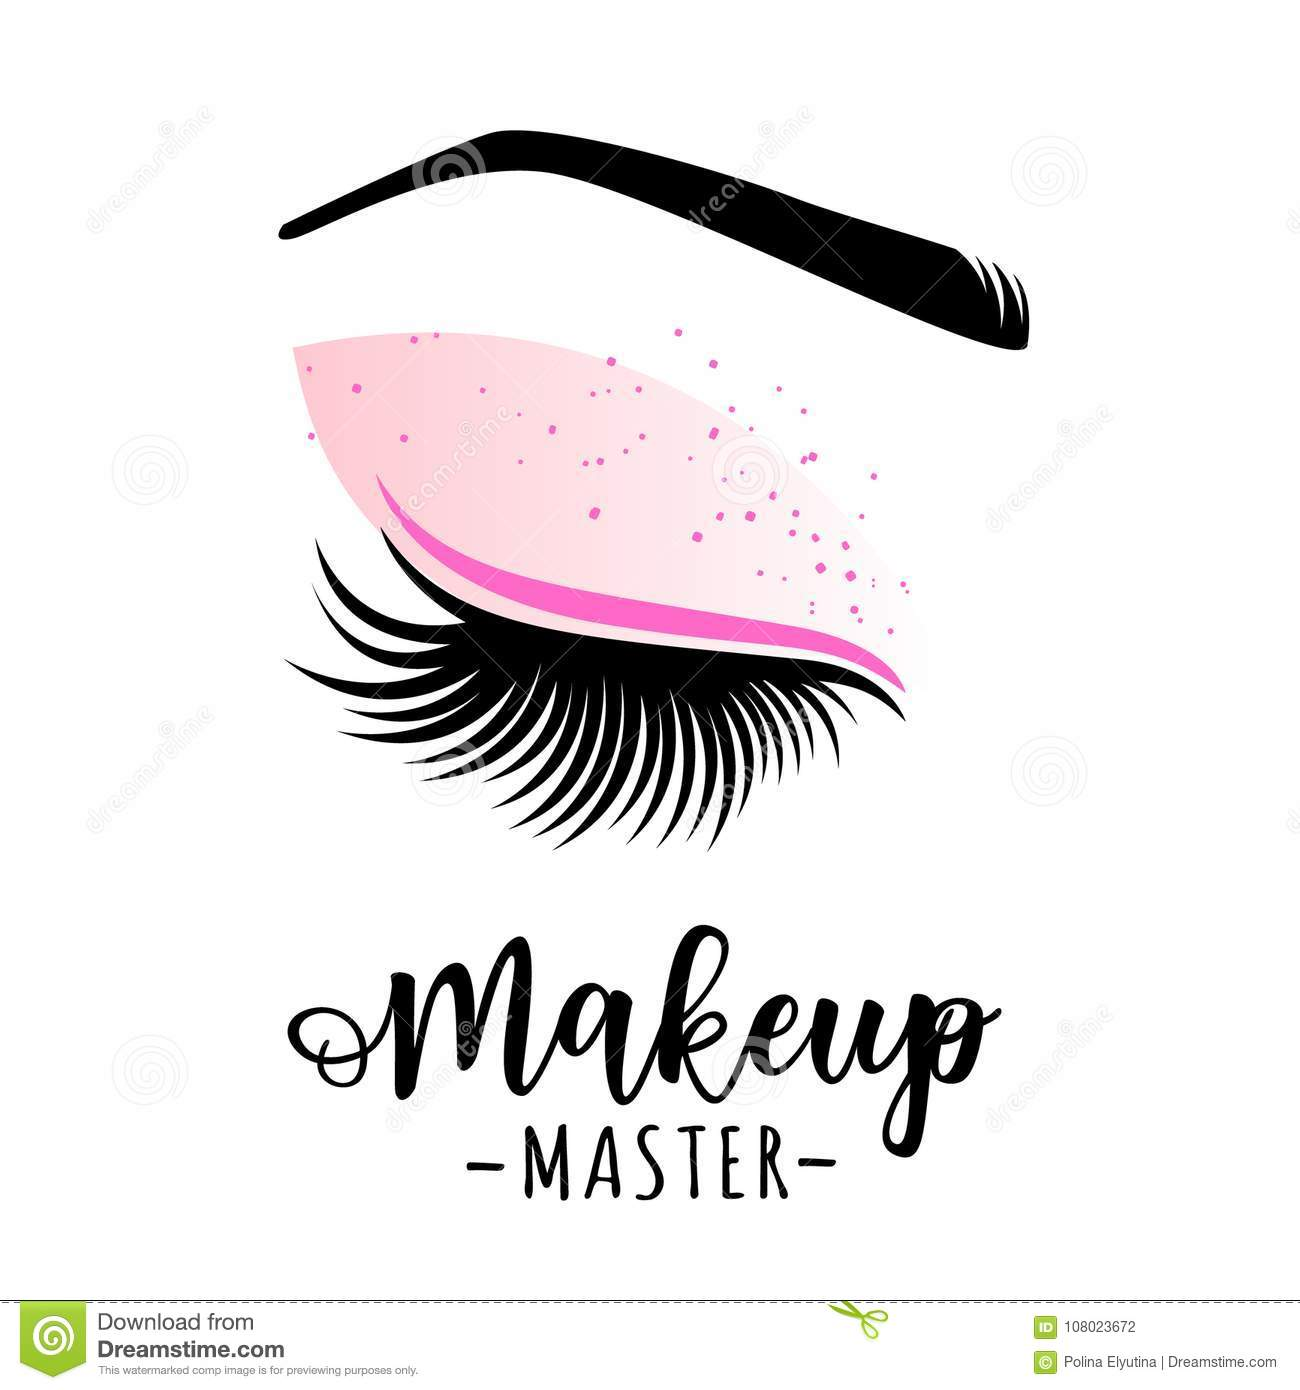 b44275f173f Makeup master logo. Vector illustration of lashes and brow. For beauty  salon, lash extensions maker, brow master.